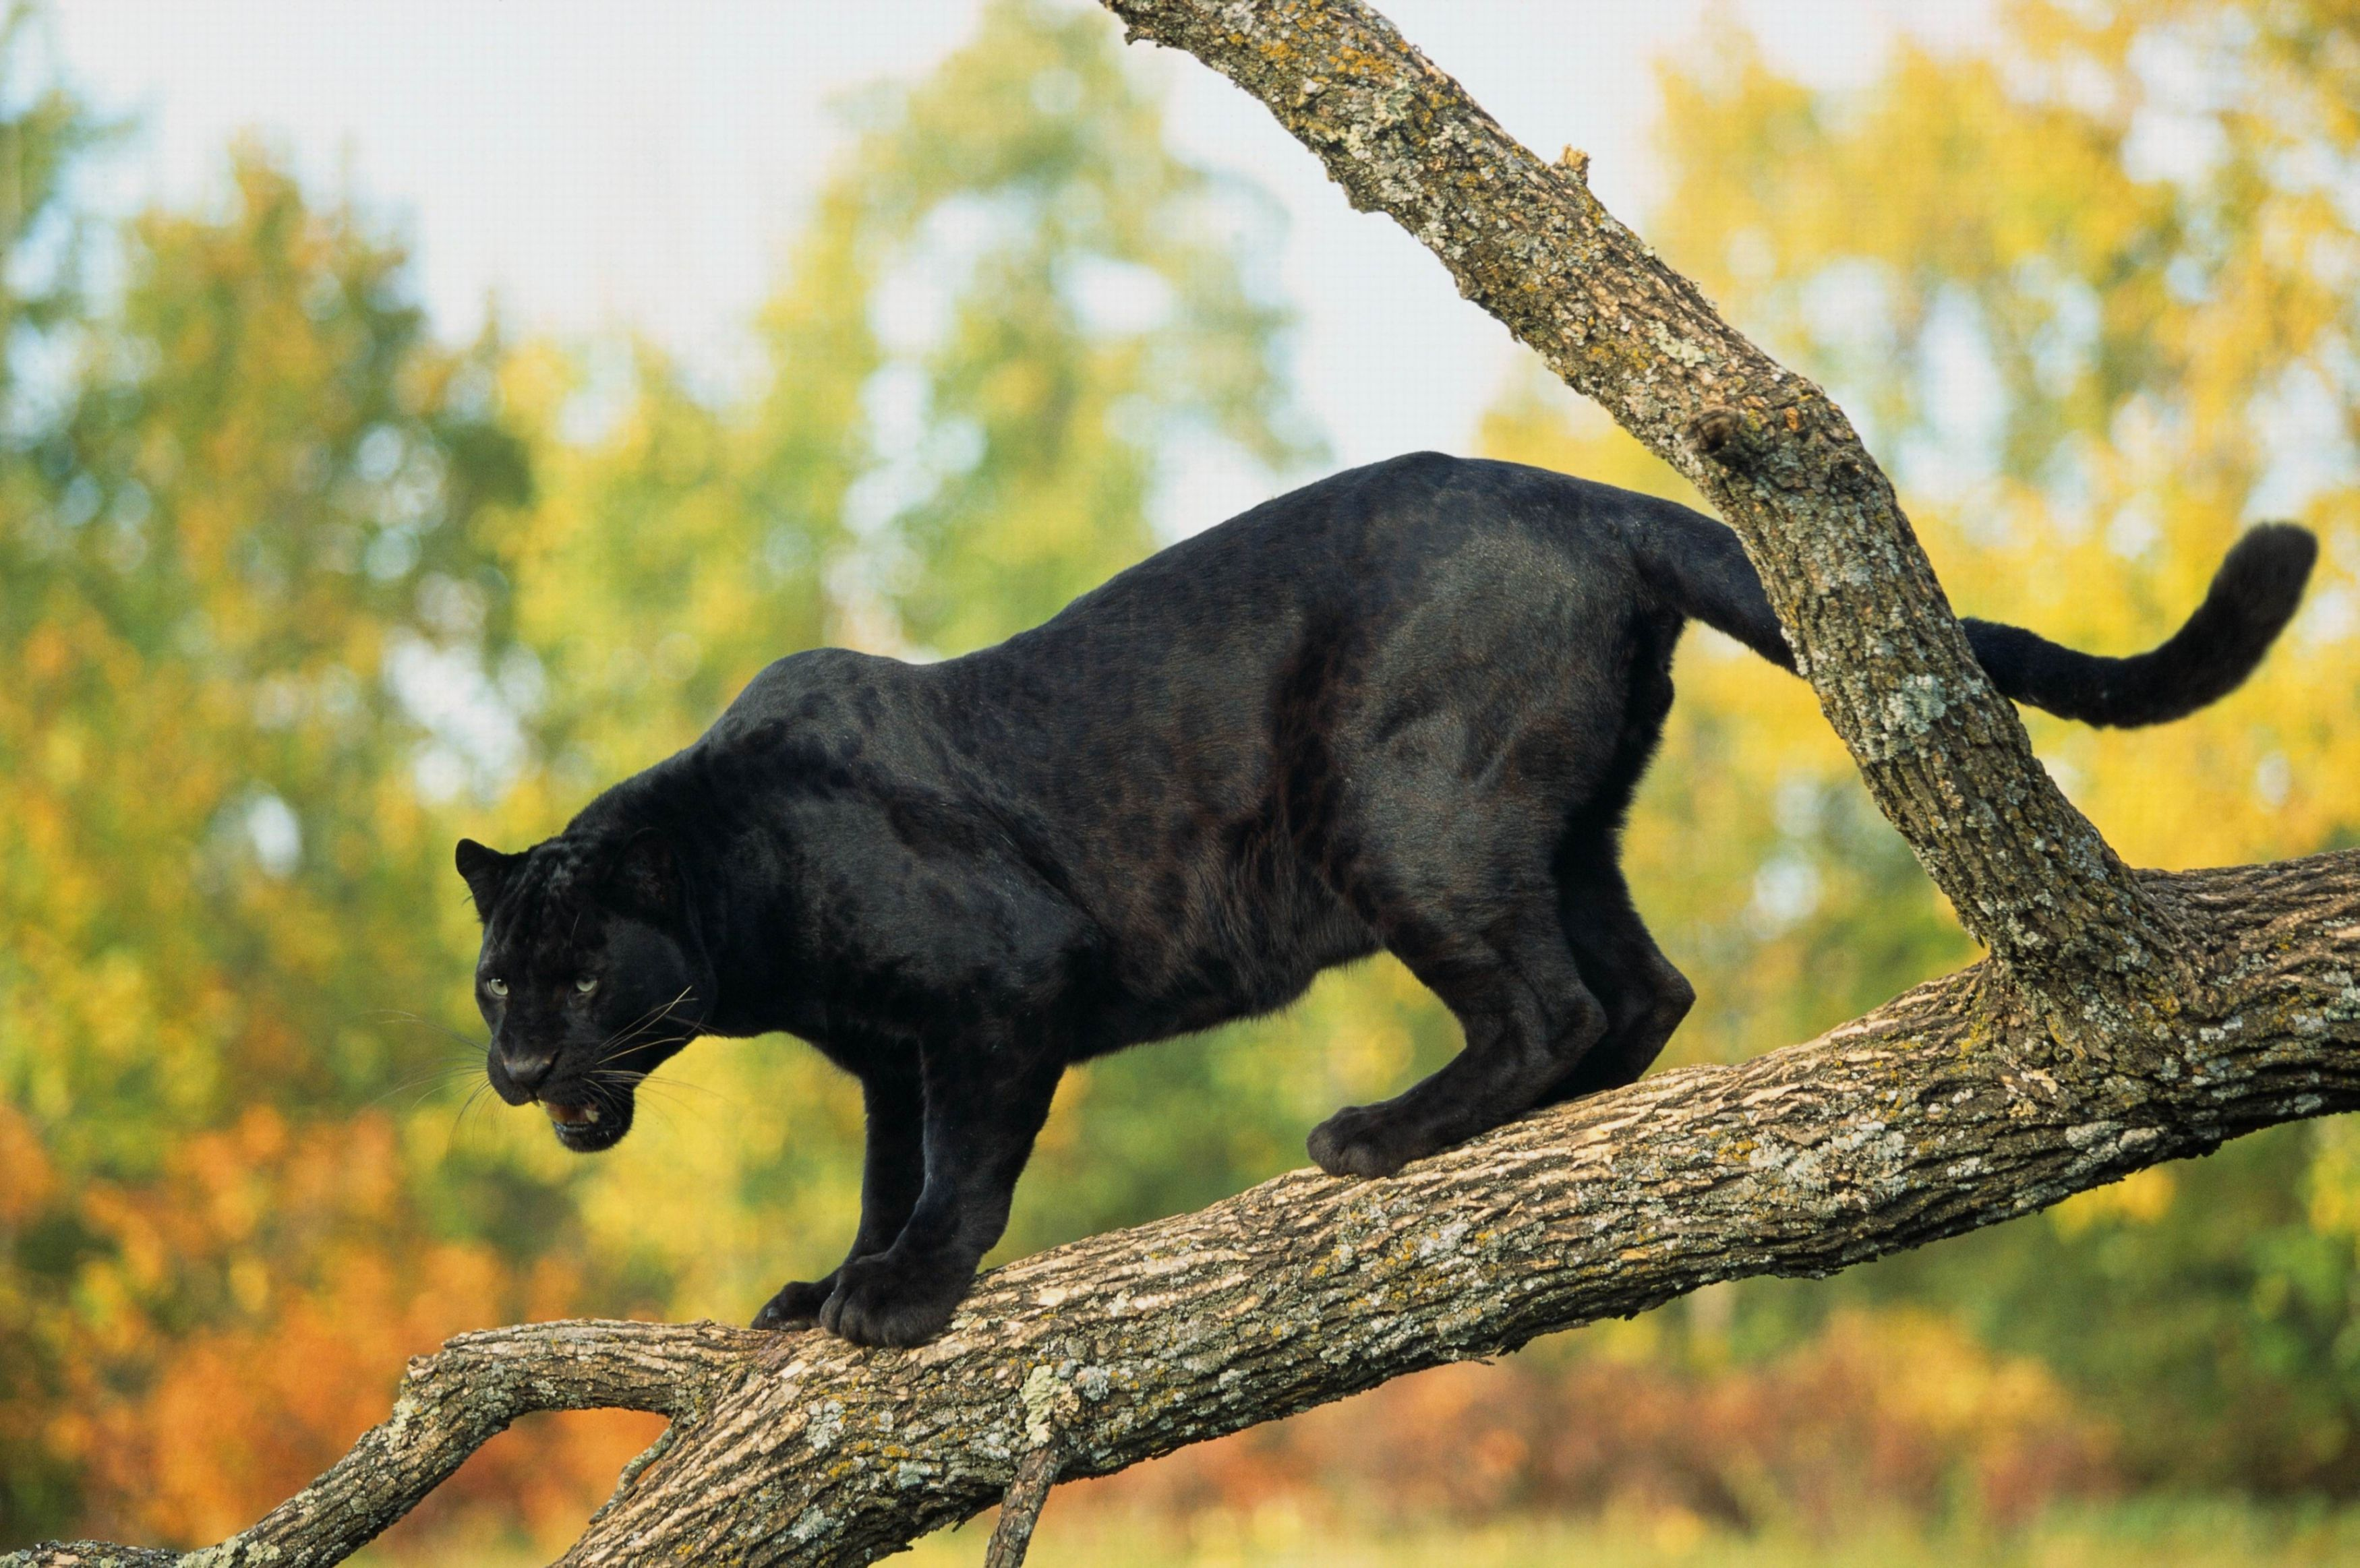 crouching black panther Google Search Black jaguar